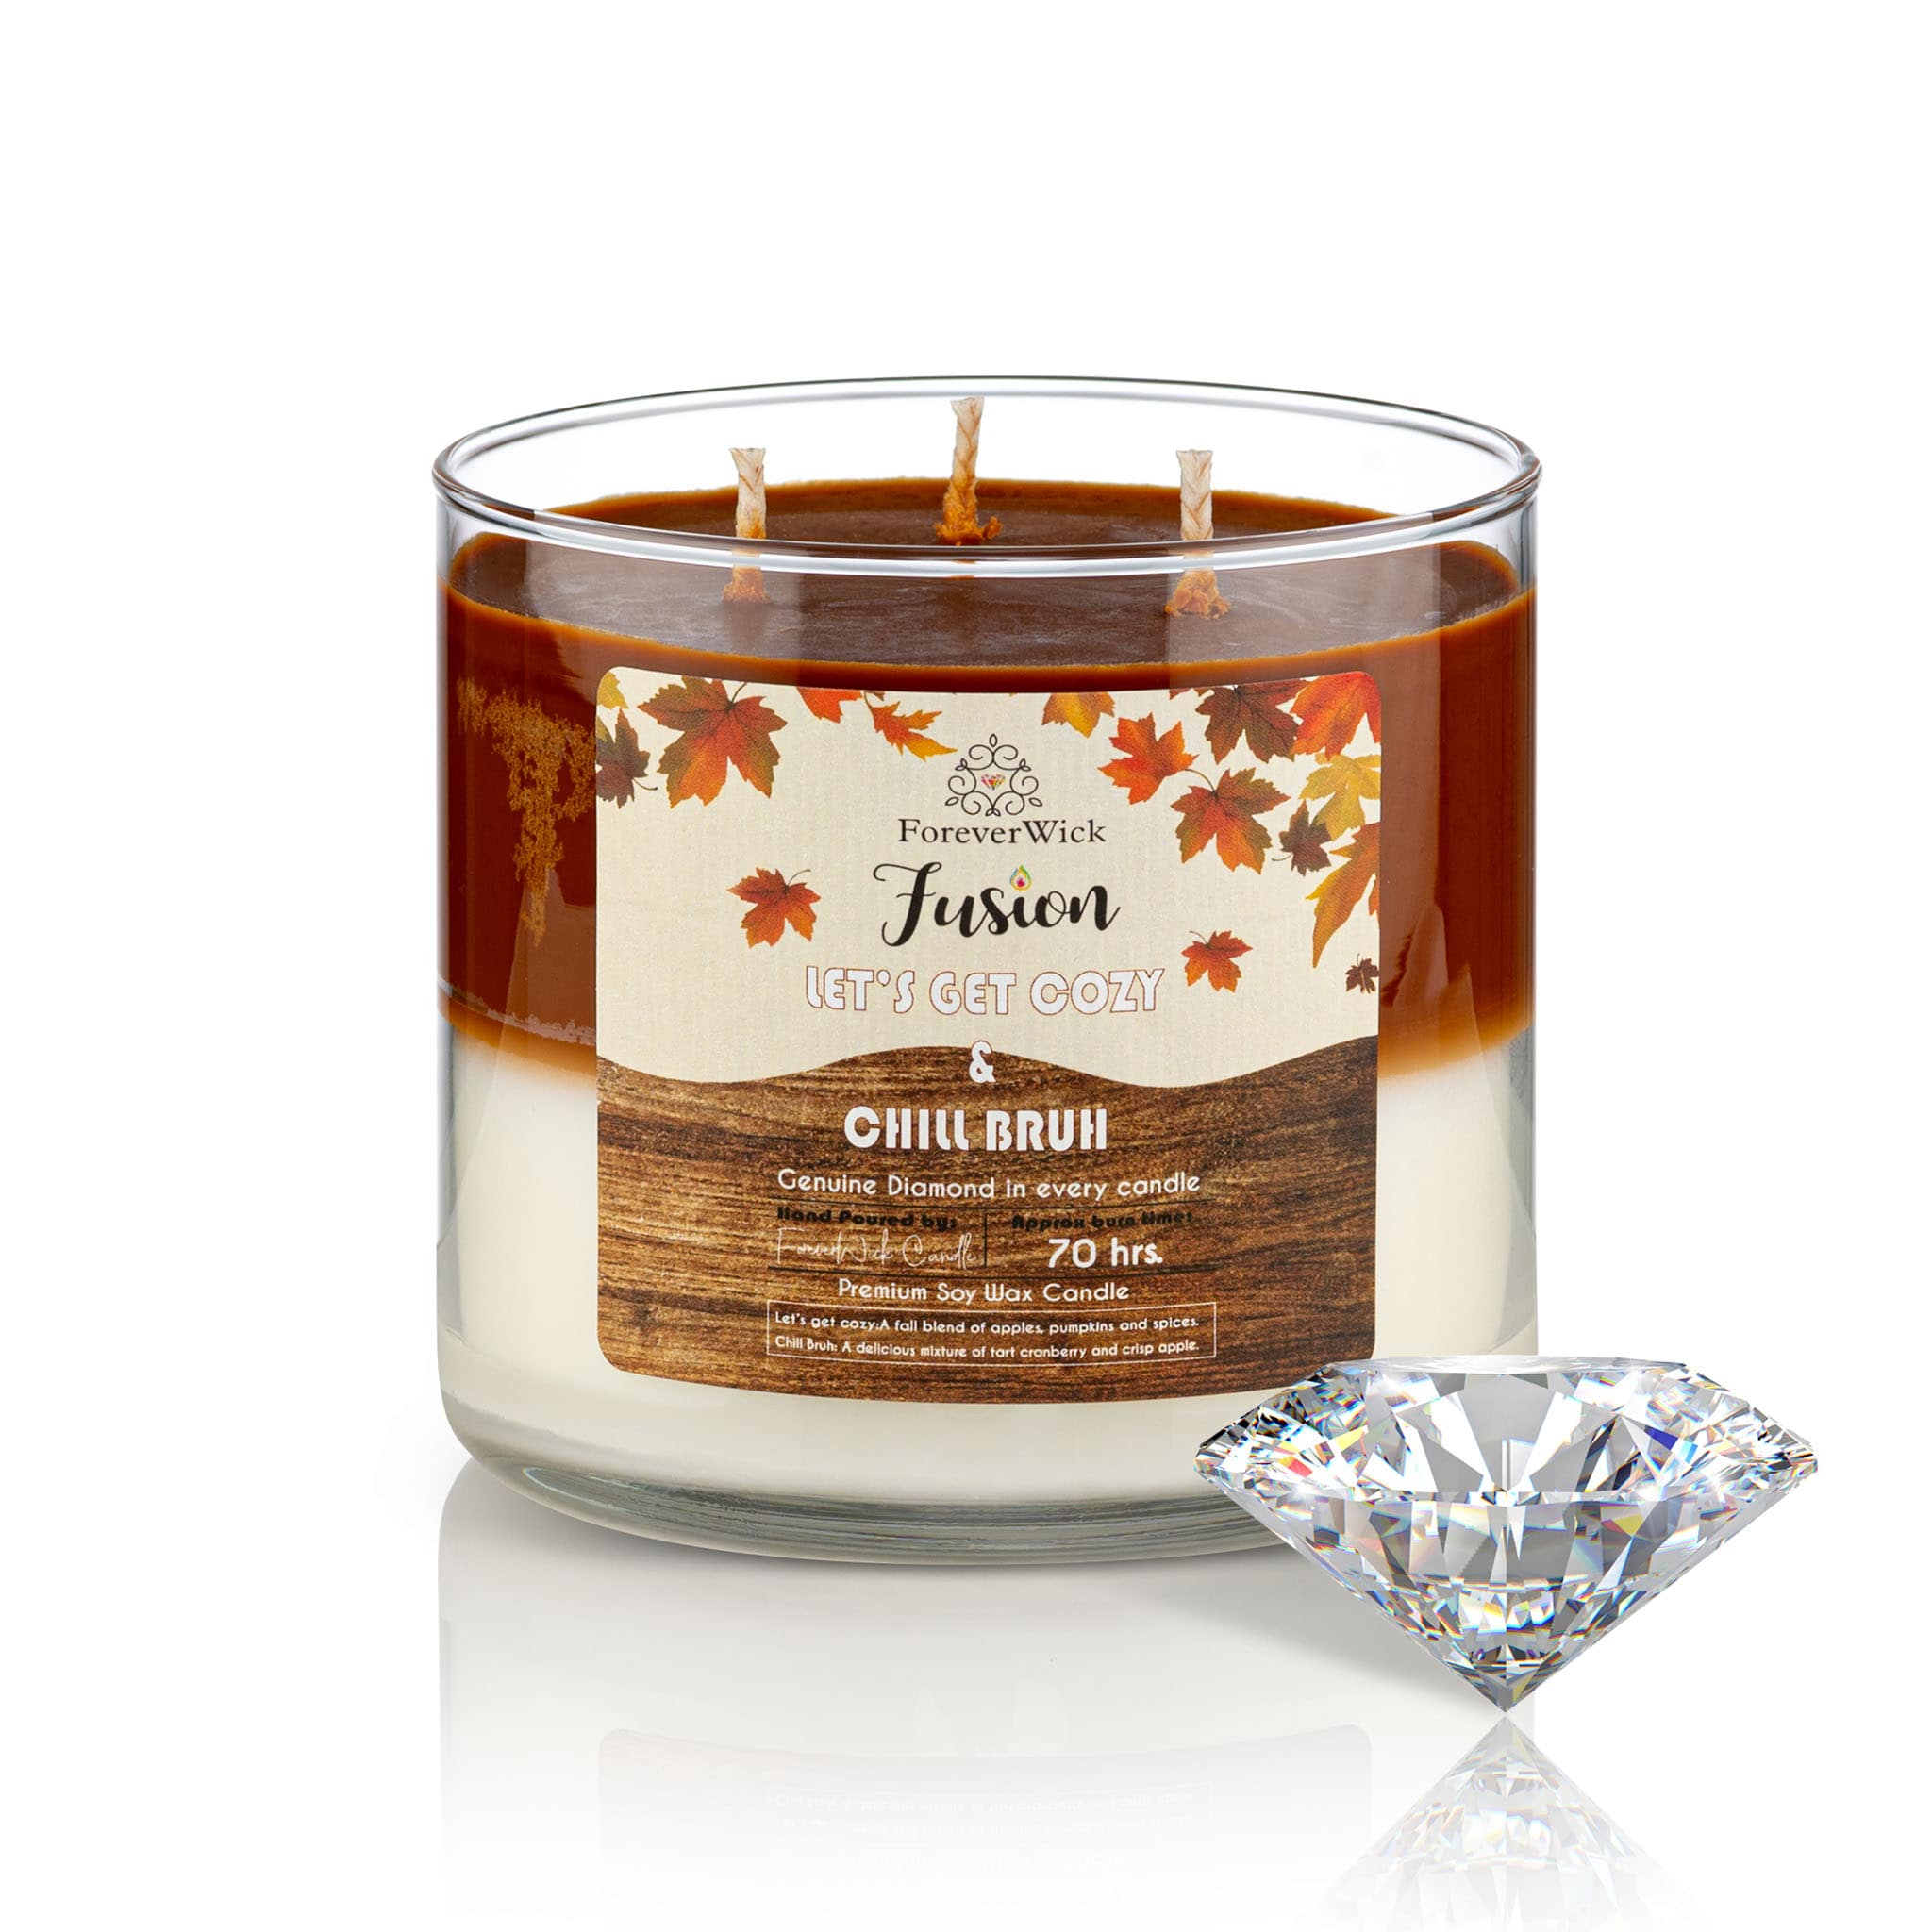 Let's Get Cozy & Chill Bruh Fusion Diamond Candle